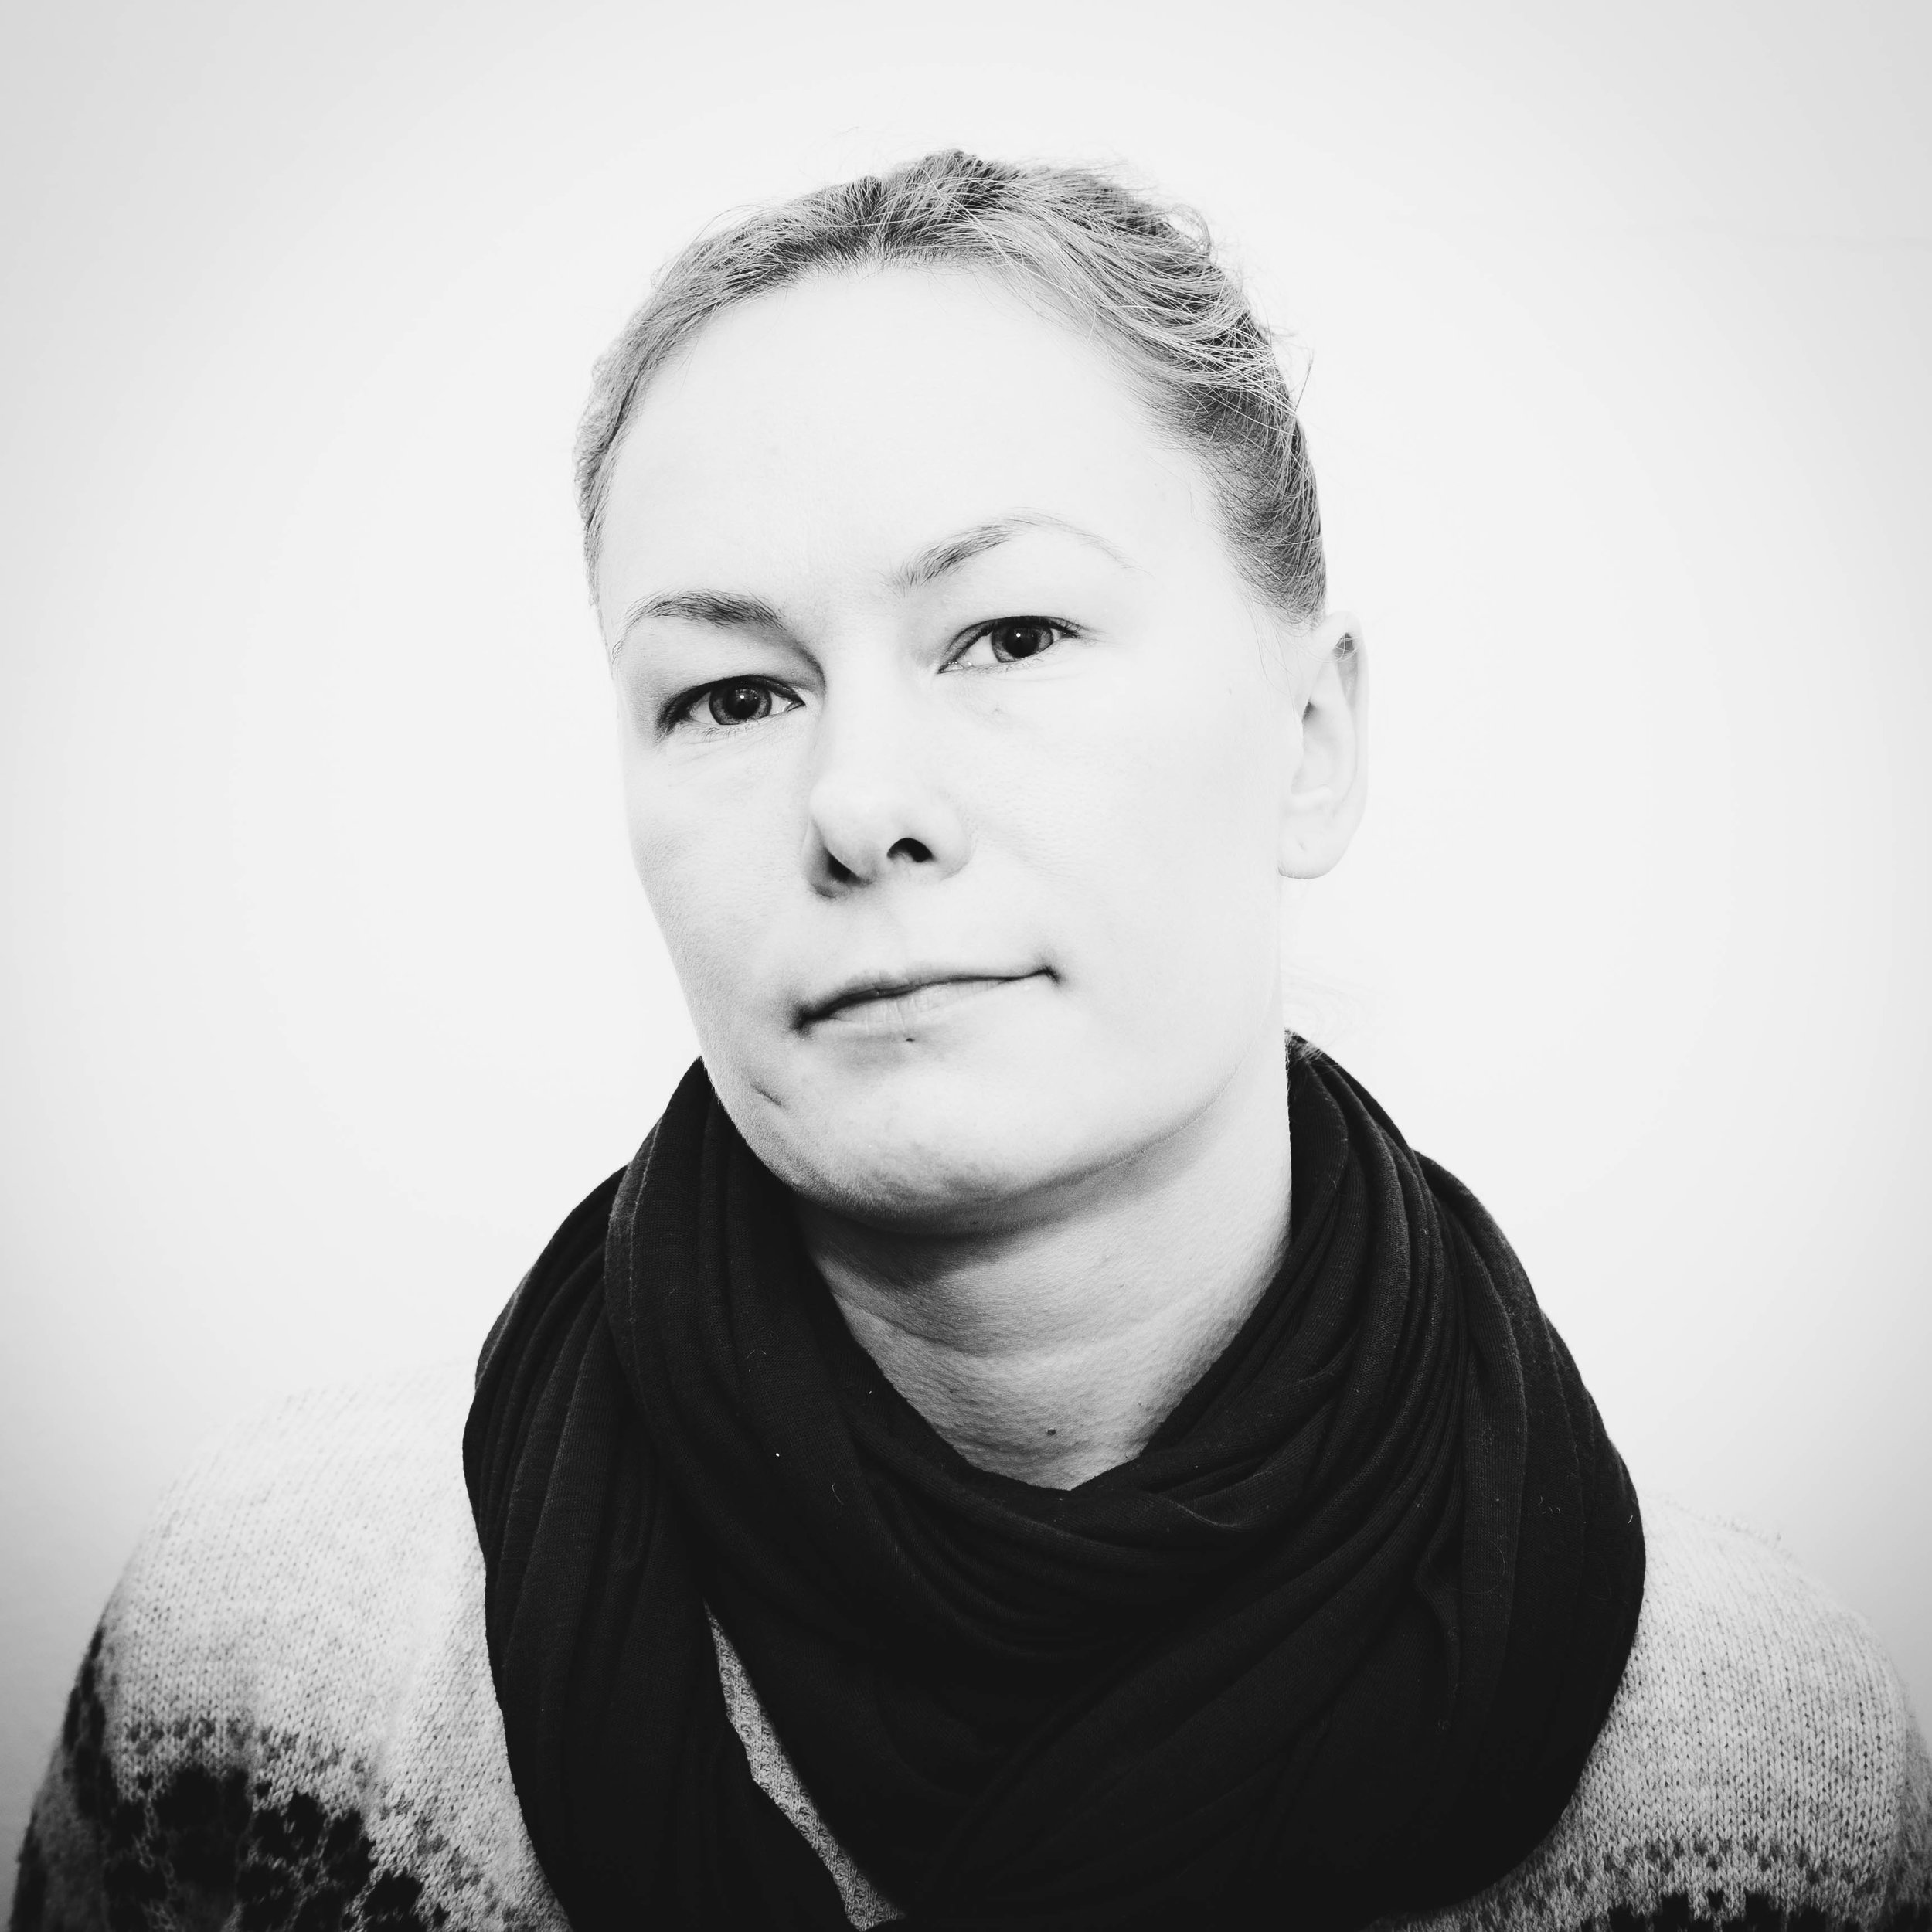 Sonja Linnanvuo   Sonja is our shooting star. At Vintra, she's involved with the most versatile projects, filming anything from puppies to CEO's, mastering it all with her camera ninja skills. When Sonja is not pointing camera towards anyone, you can find her on tatami doing martial arts.